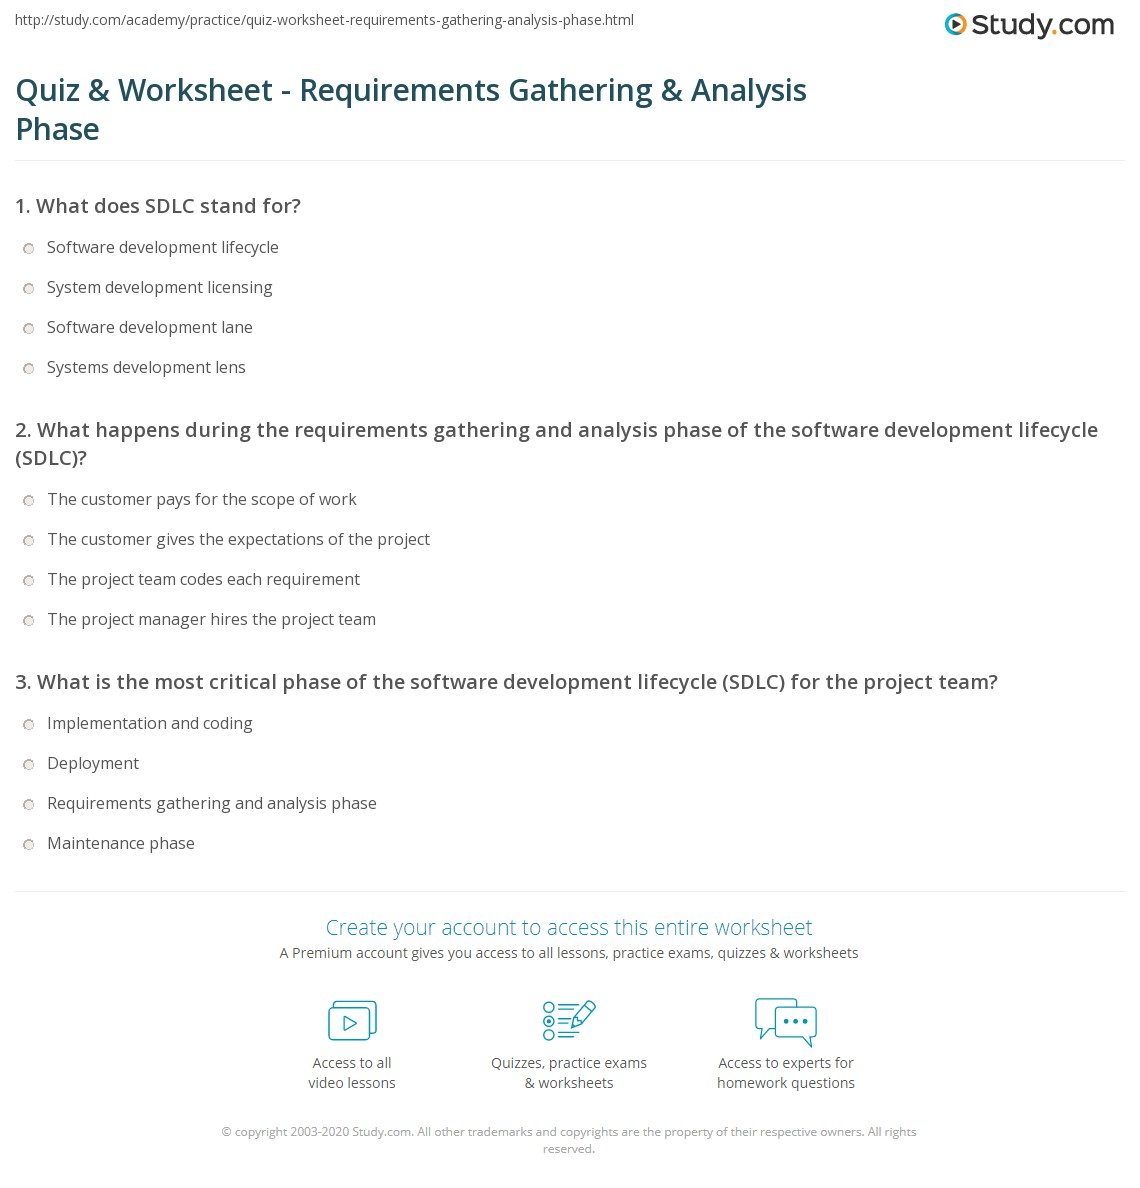 Quiz Worksheet Requirements Gathering Analysis Phase Study Com